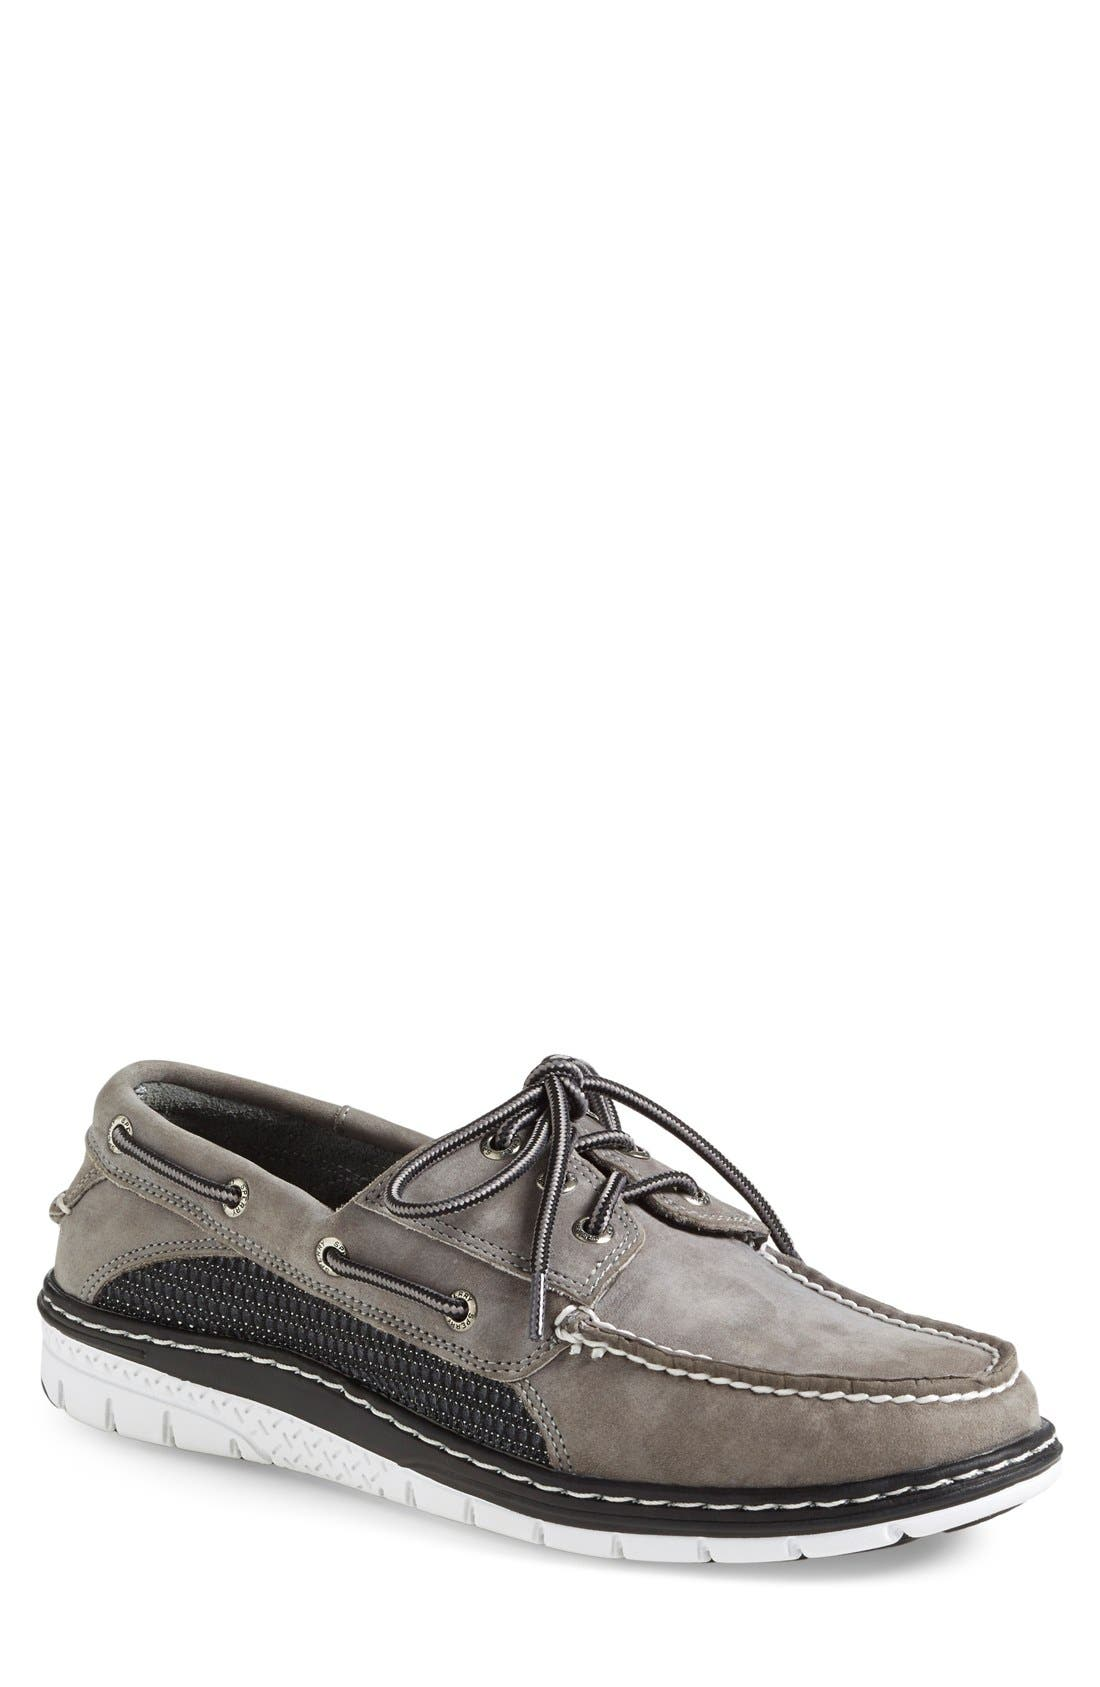 'Billfish Ultralite' Boat Shoe,                             Main thumbnail 1, color,                             Grey/ Black Leather